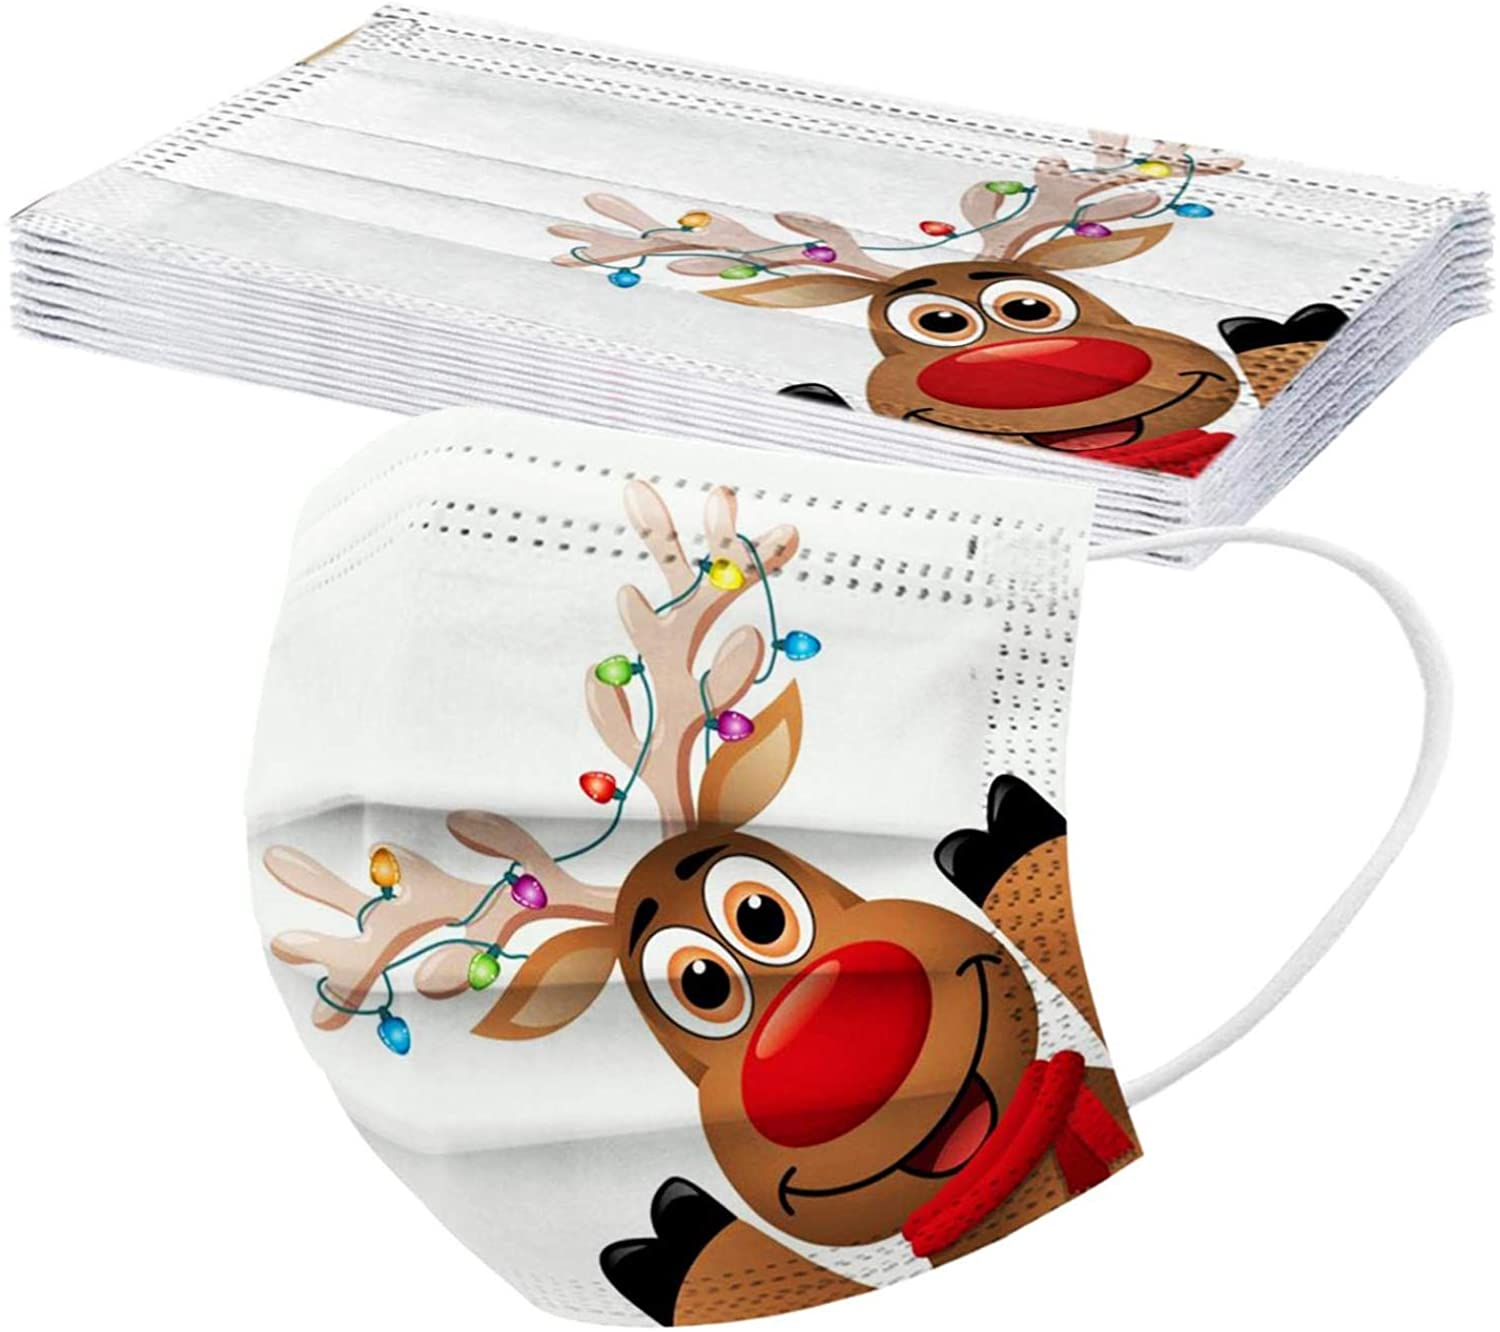 10Pcs Unisex Adults Reindeer Theme Printed Disposable_Face_Mäsks, 3-ply Face Mouth Surgical Hygiene Protection Shield,with Elastic Earloops and Nose Clip, No Smell Non-Wowen Safety Protection